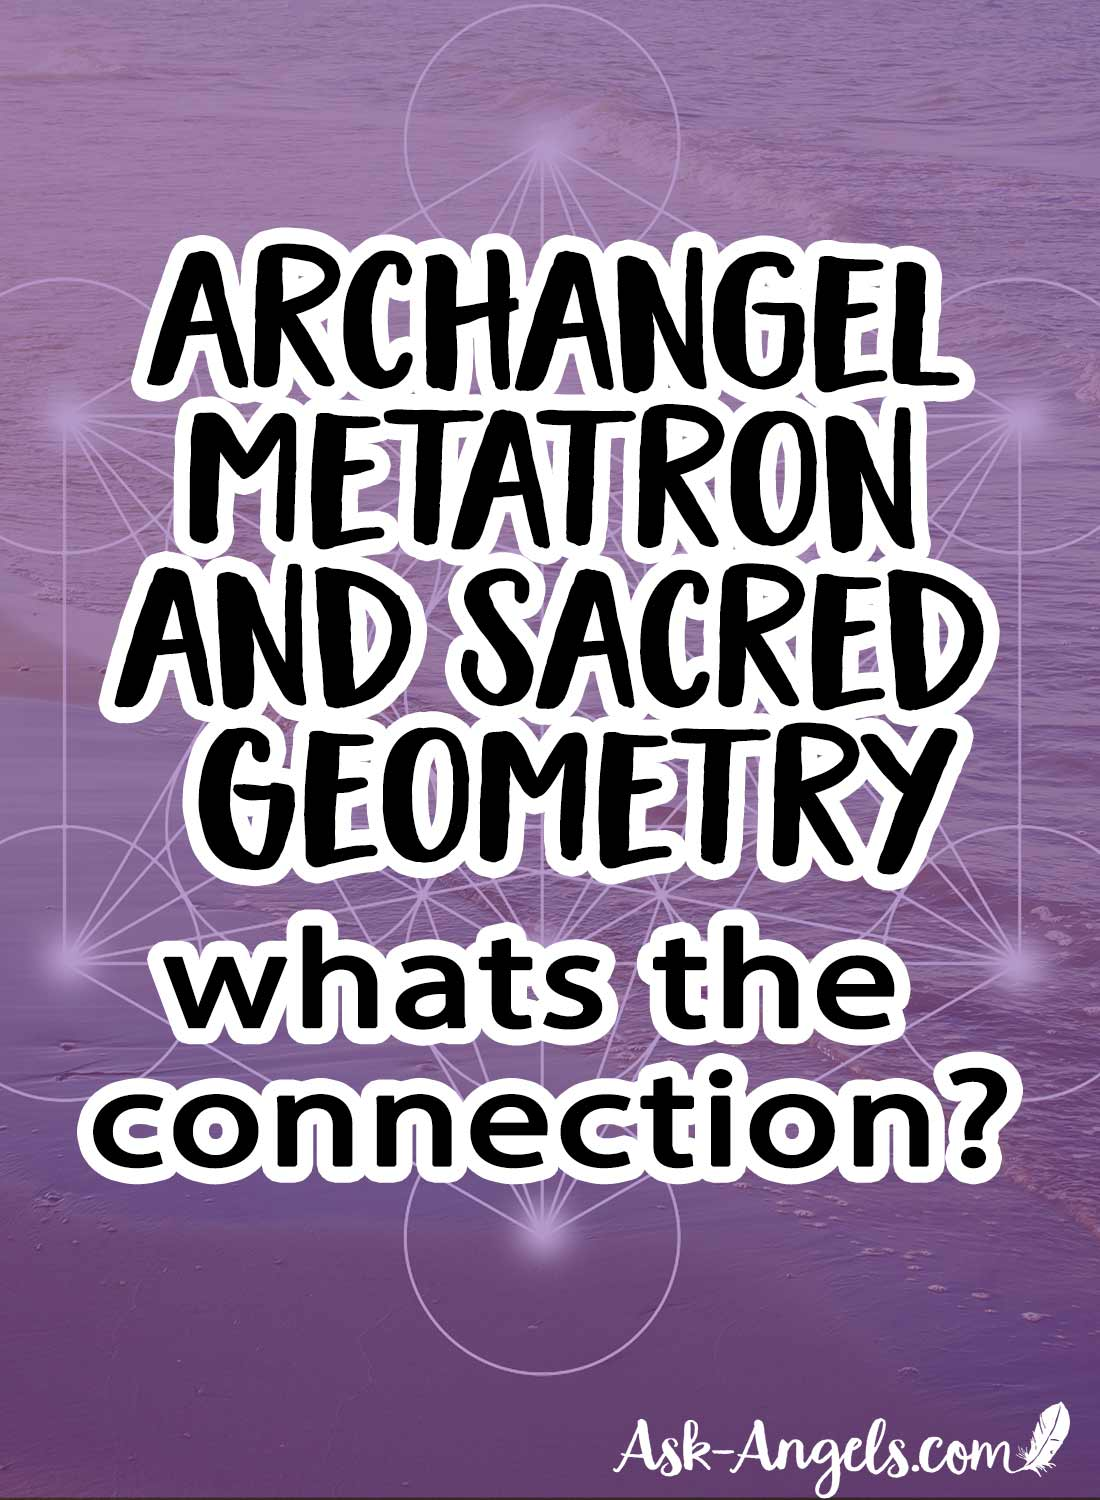 Archangel Metatron and Sacred Geometry - Whats the Connection?